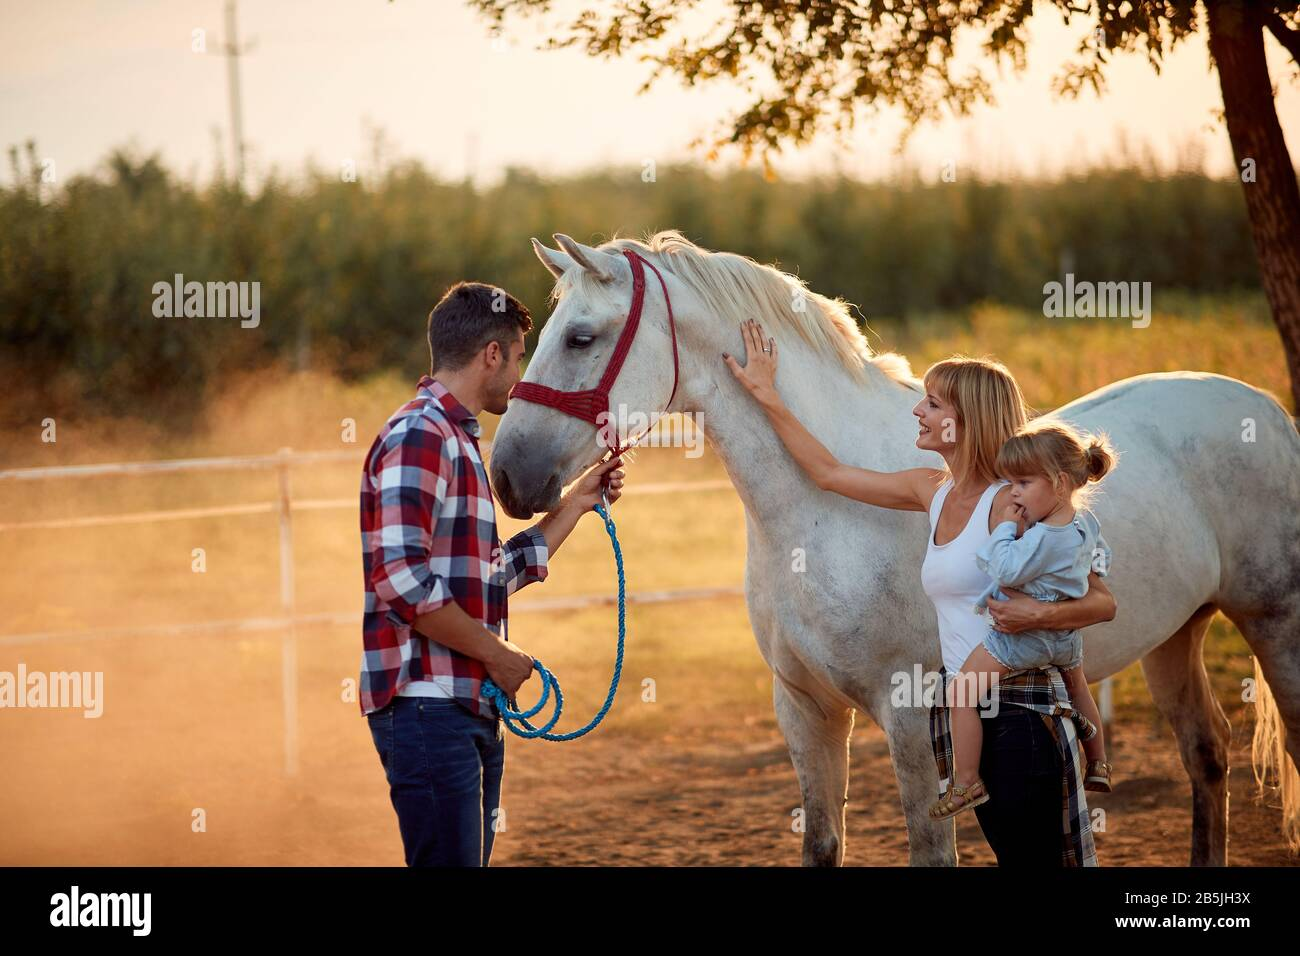 Family Petting Horses People Have A Fun With A Beautiful Horse Stock Photo Alamy